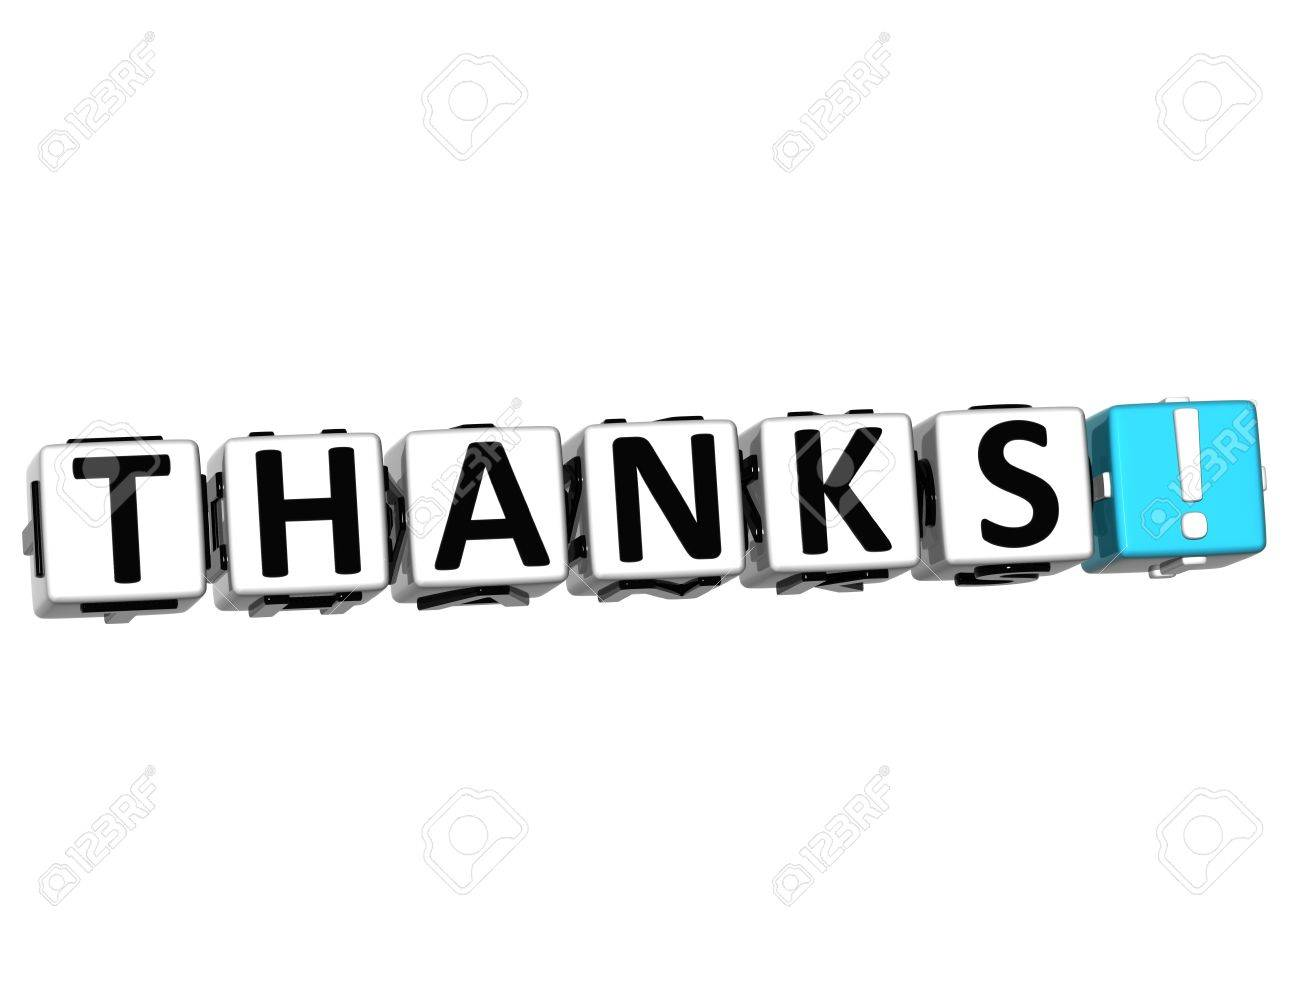 the word thank you in many different languages block text over rh 123rf com free thank you in different languages clipart thank you in other languages clipart